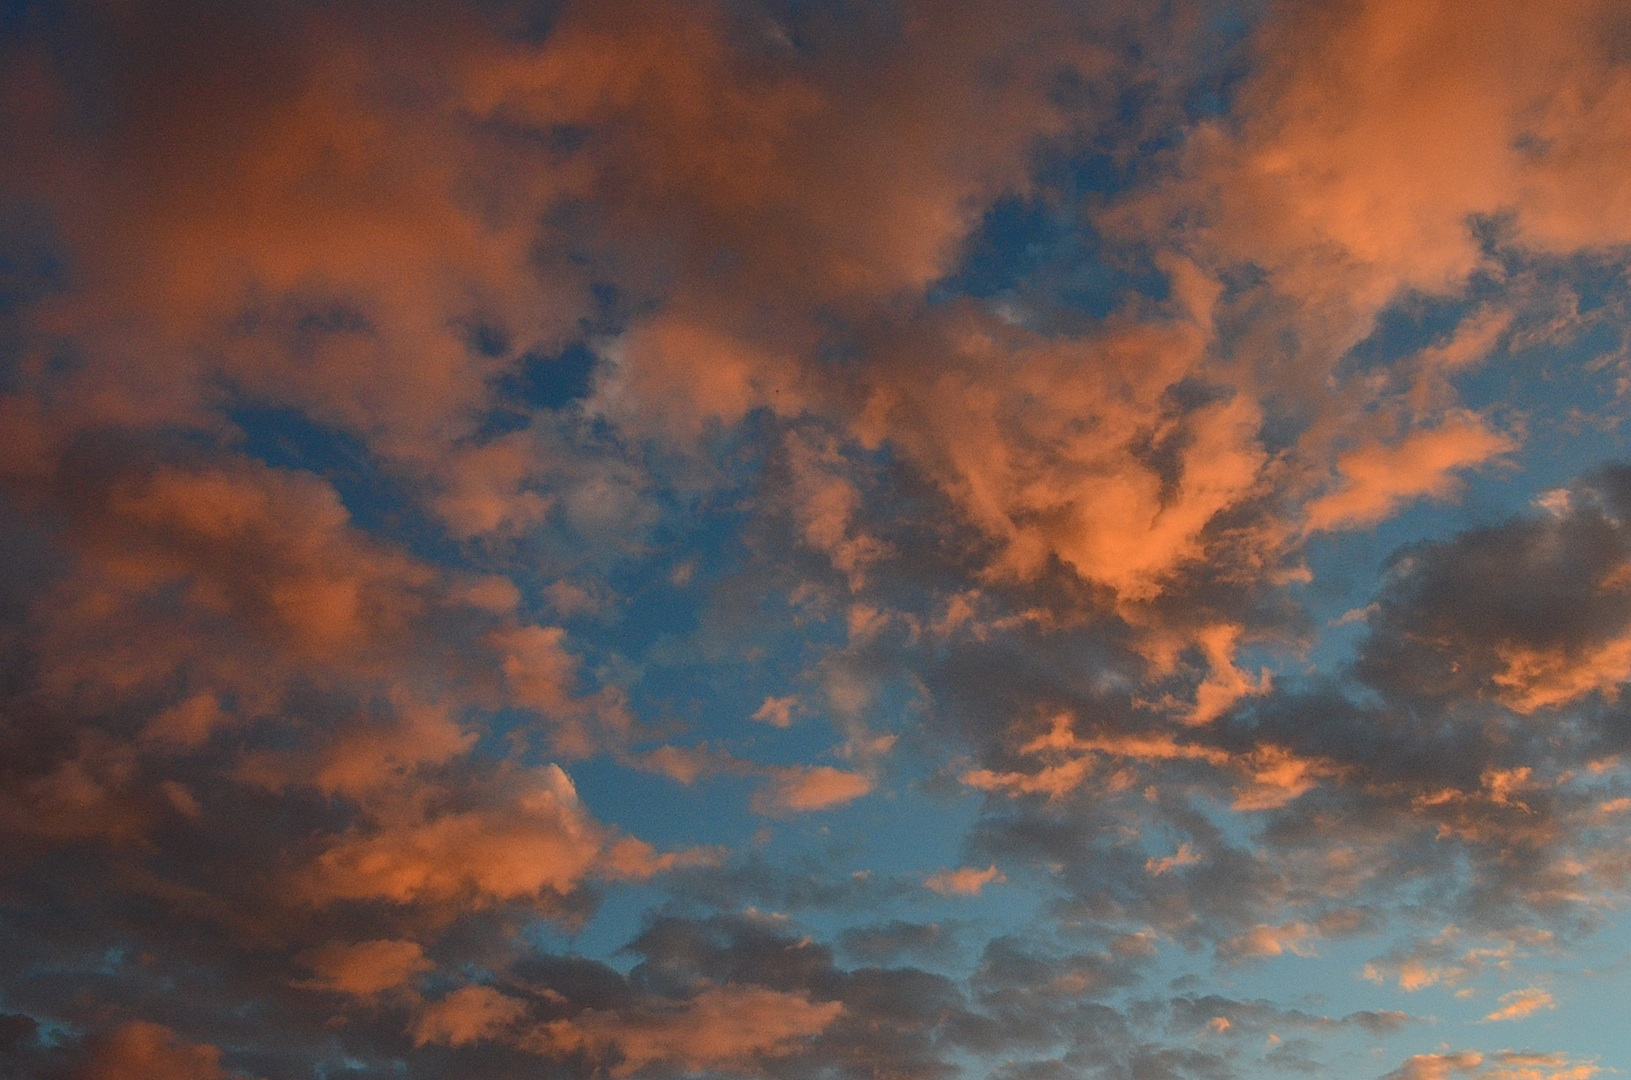 Clouds at sunset.  San Dieguito Lagoon.  Del Mar, California.  November 24th, 2013.